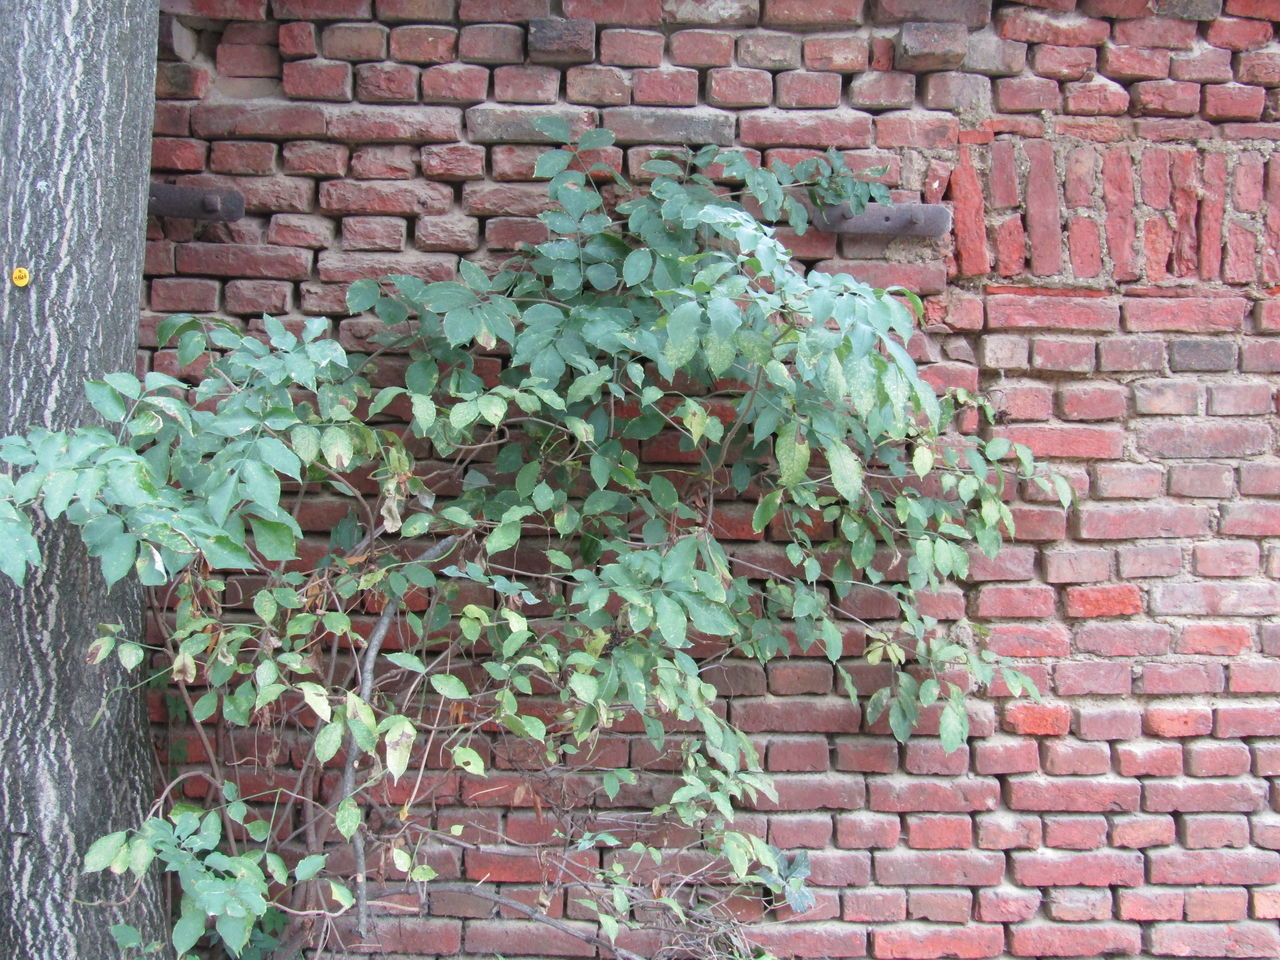 brick wall, wall - building feature, leaf, built structure, architecture, brick, wall, plant, growth, building exterior, creeper plant, green color, outdoors, day, stone material, nature, fragility, creeper, no people, springtime